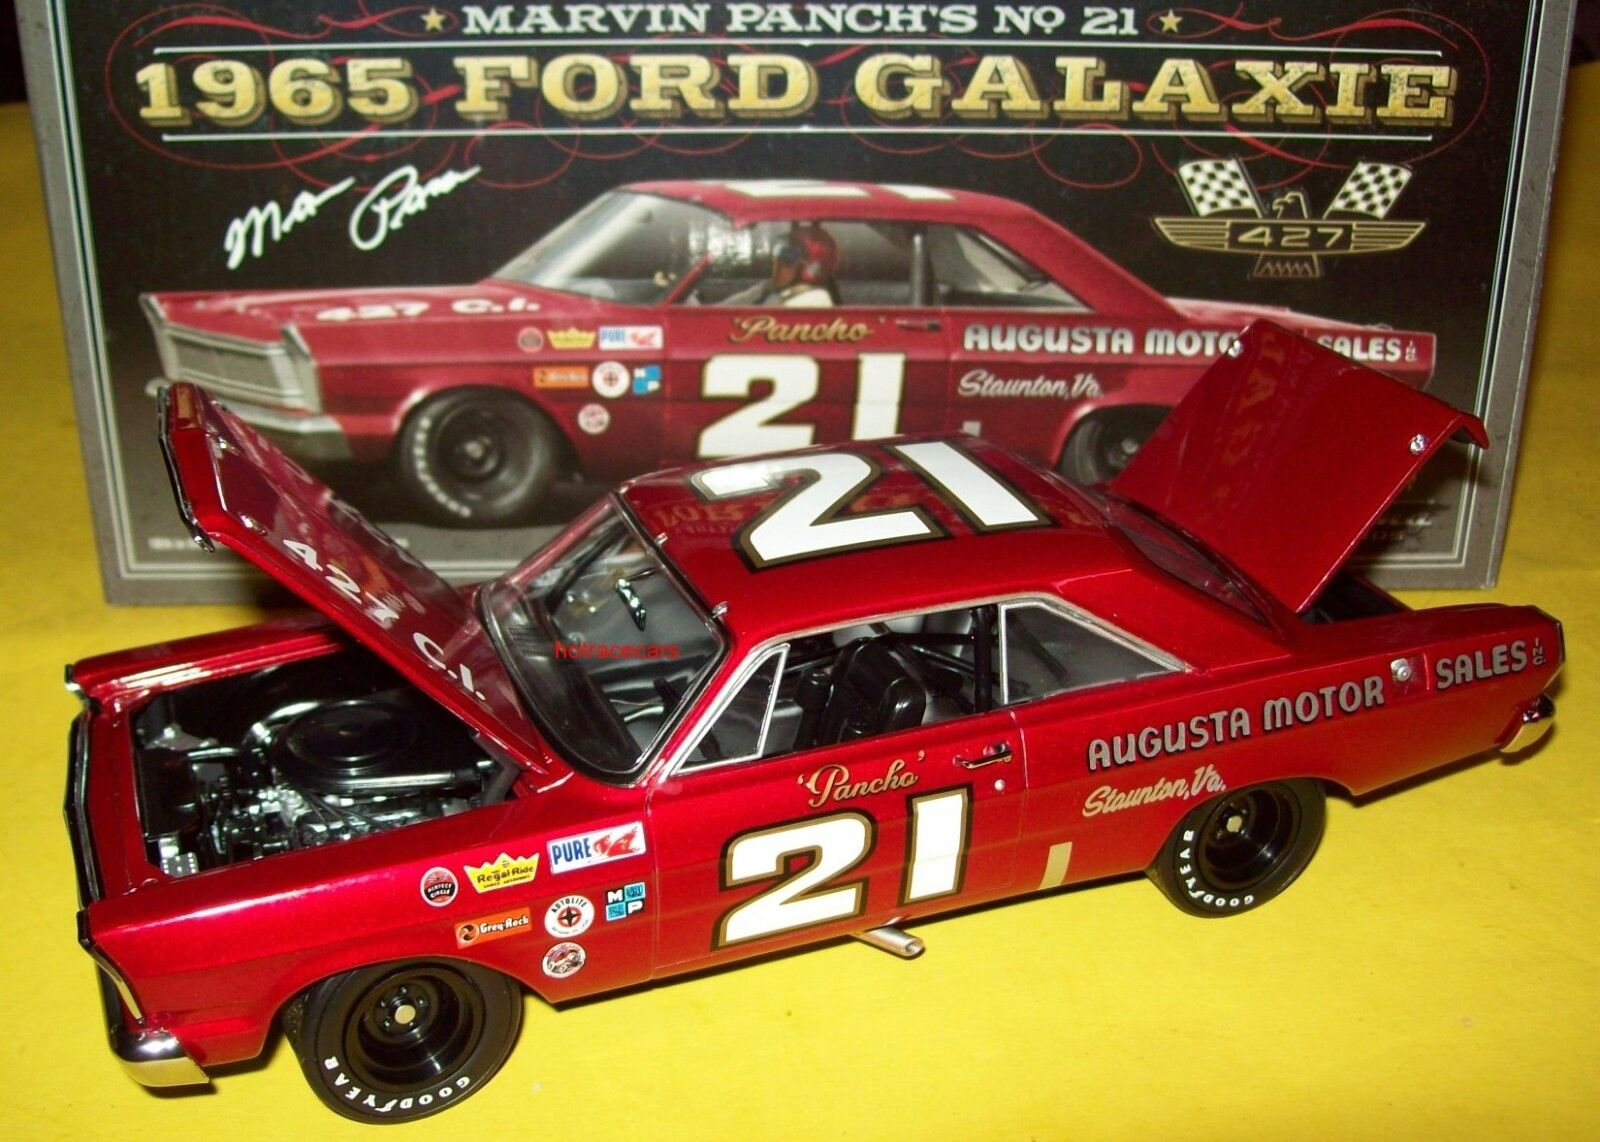 Marvin Panch 1965 Ford Galaxie Augusta Motor Sales 1 24 NASCAR Legends New